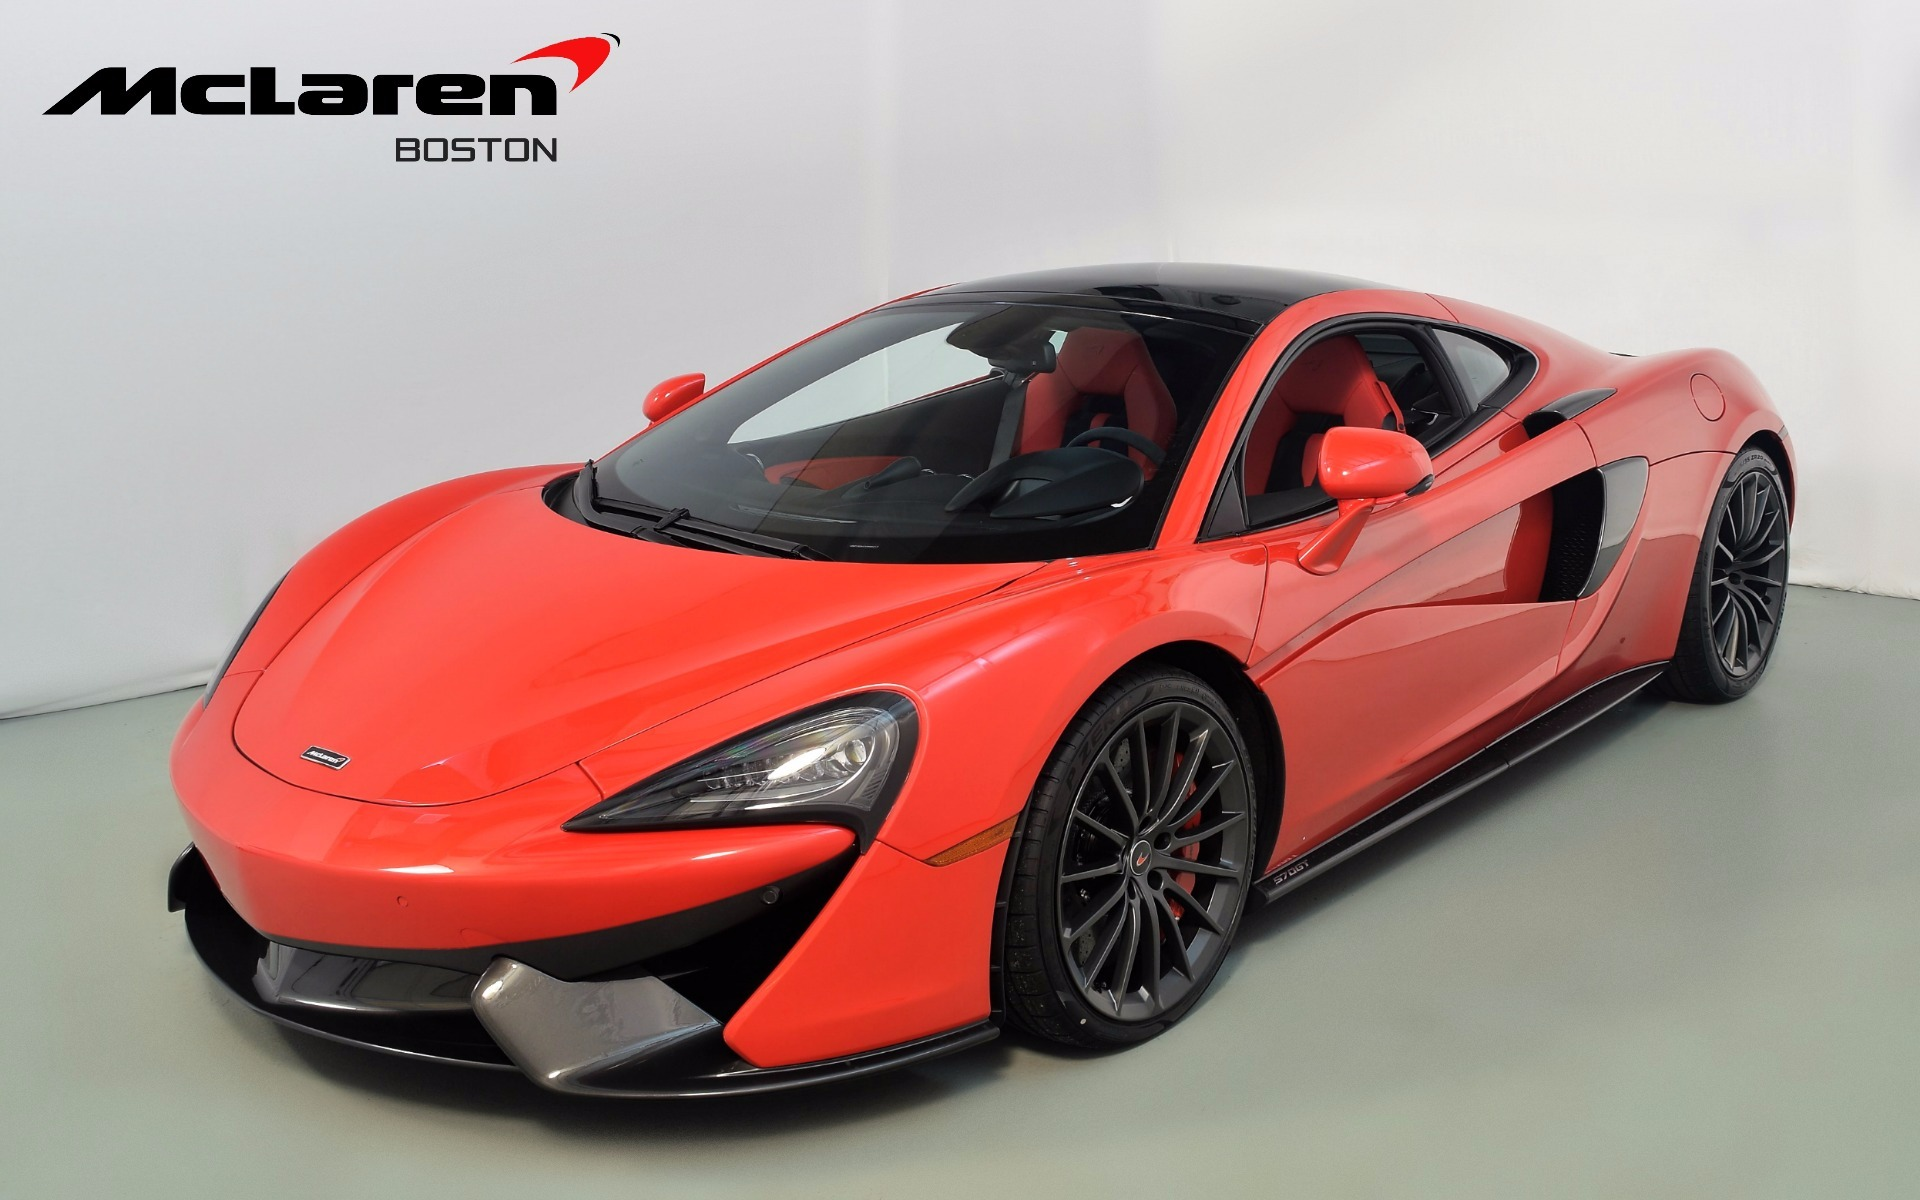 How To Calculate Apr On A Loan >> 2017 MCLAREN 570GT For Sale in Norwell, MA 002173 | Mclaren Boston